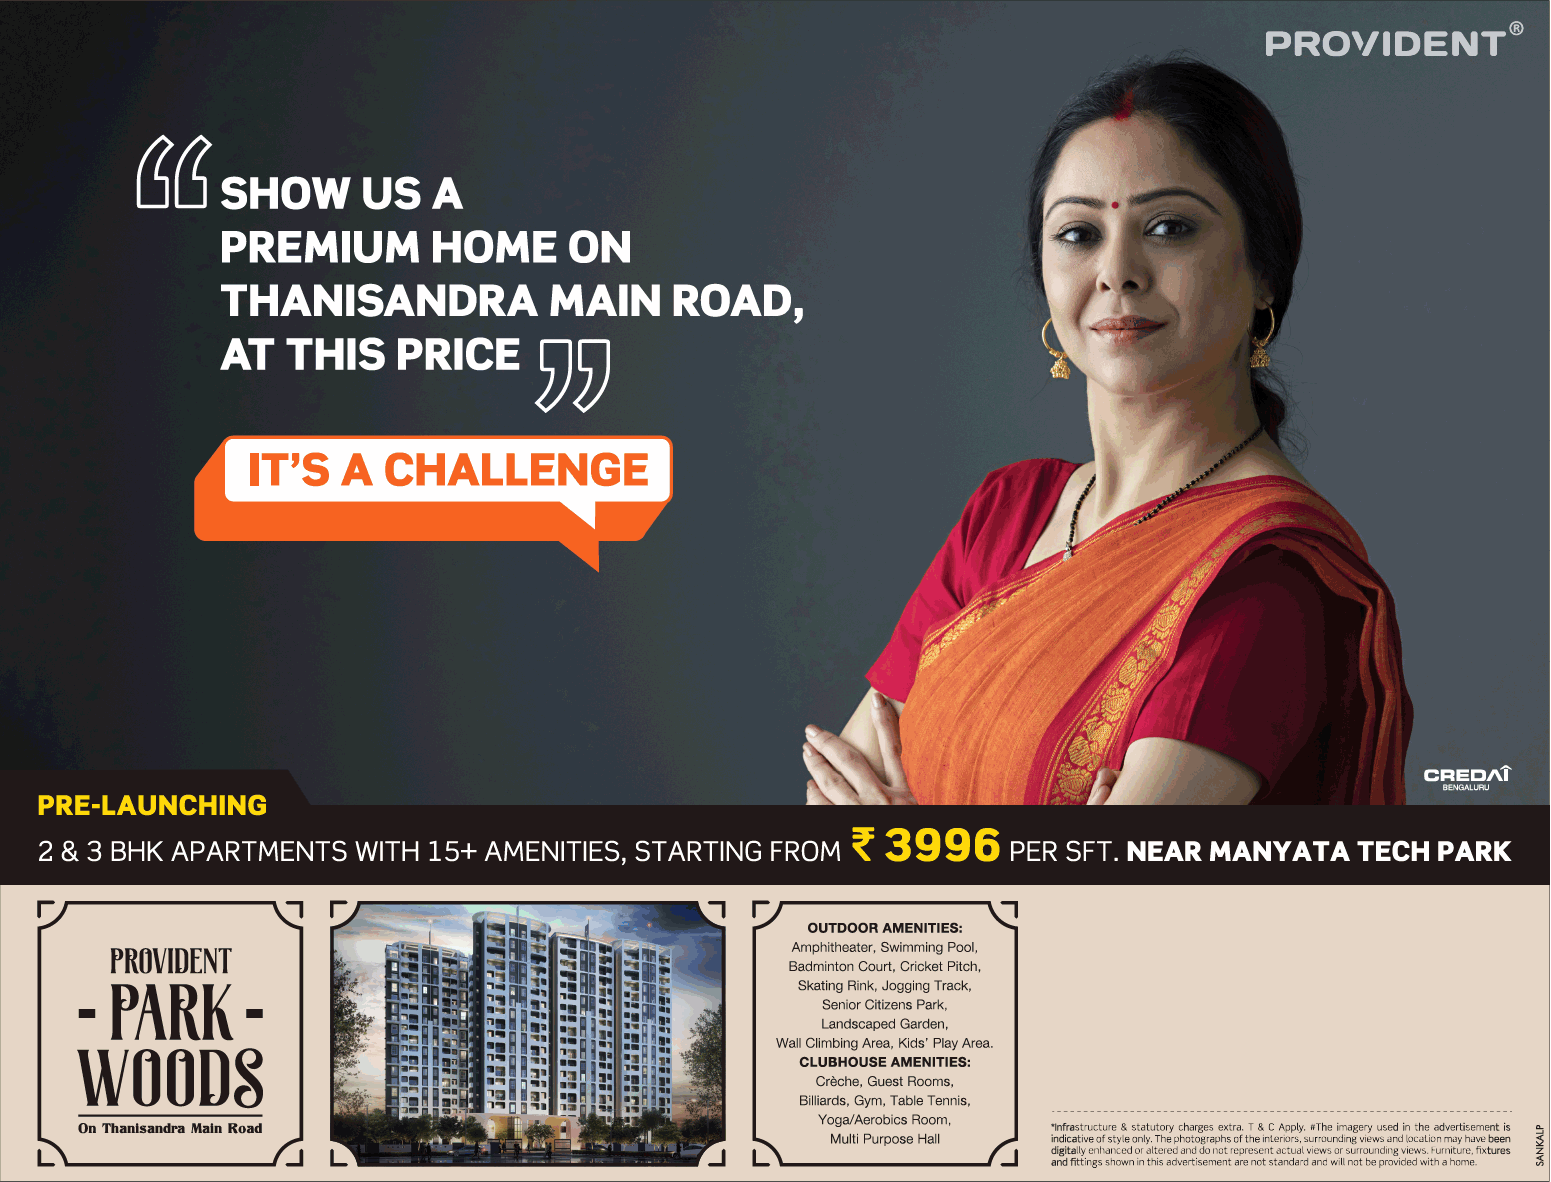 Book 2 3 bhk apartments with 15 amenities at Rs 3996 per sqft at Provident Park Woods in Bangalore